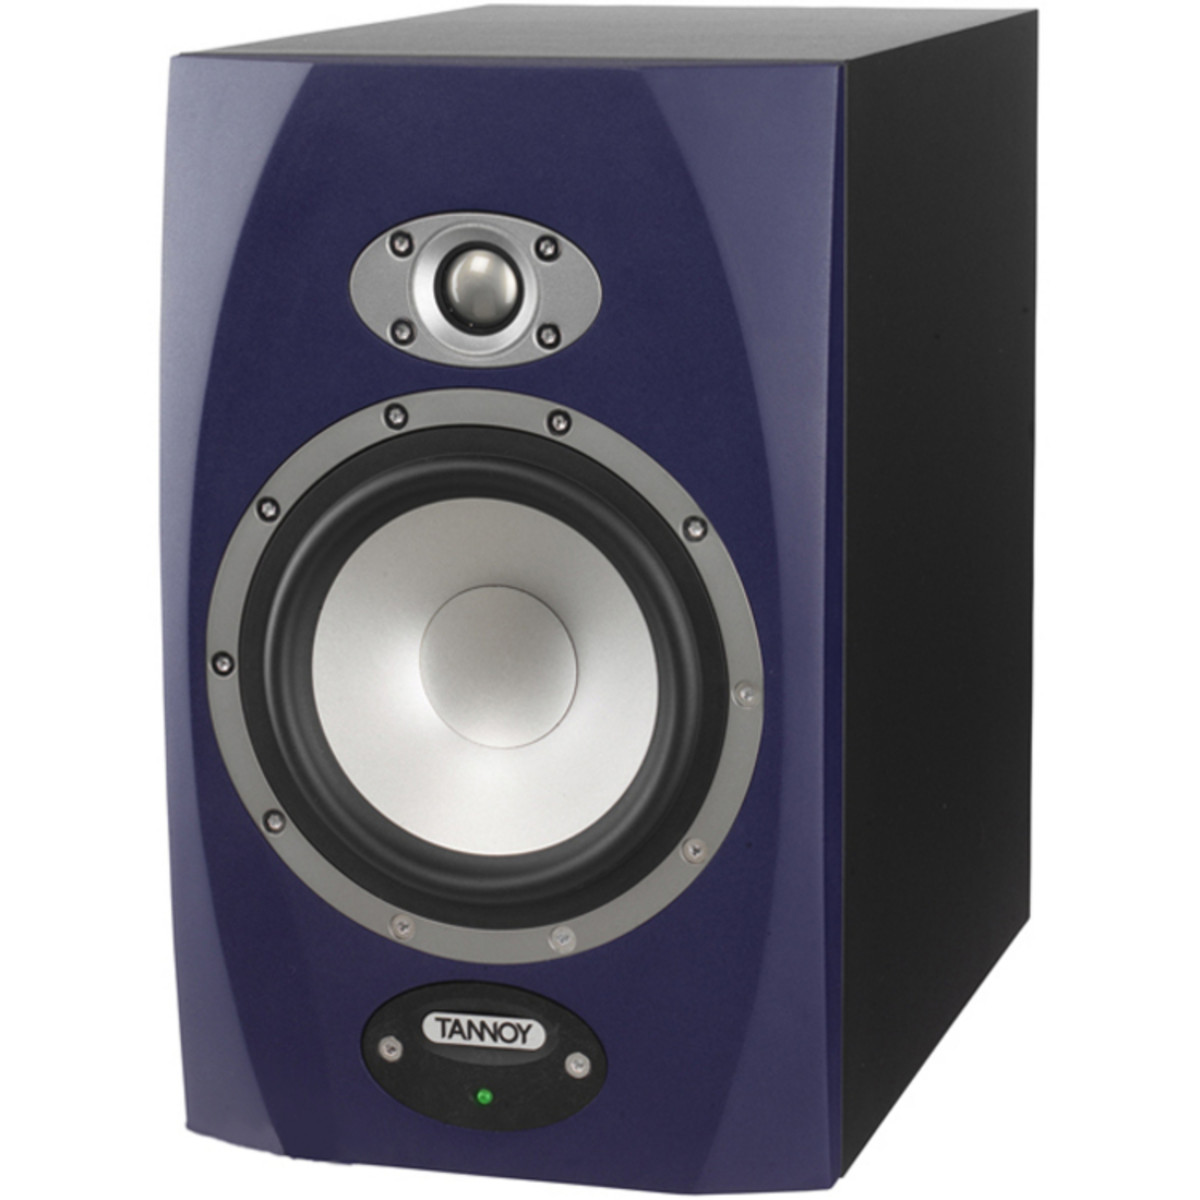 Tannoy precision 62 speakers